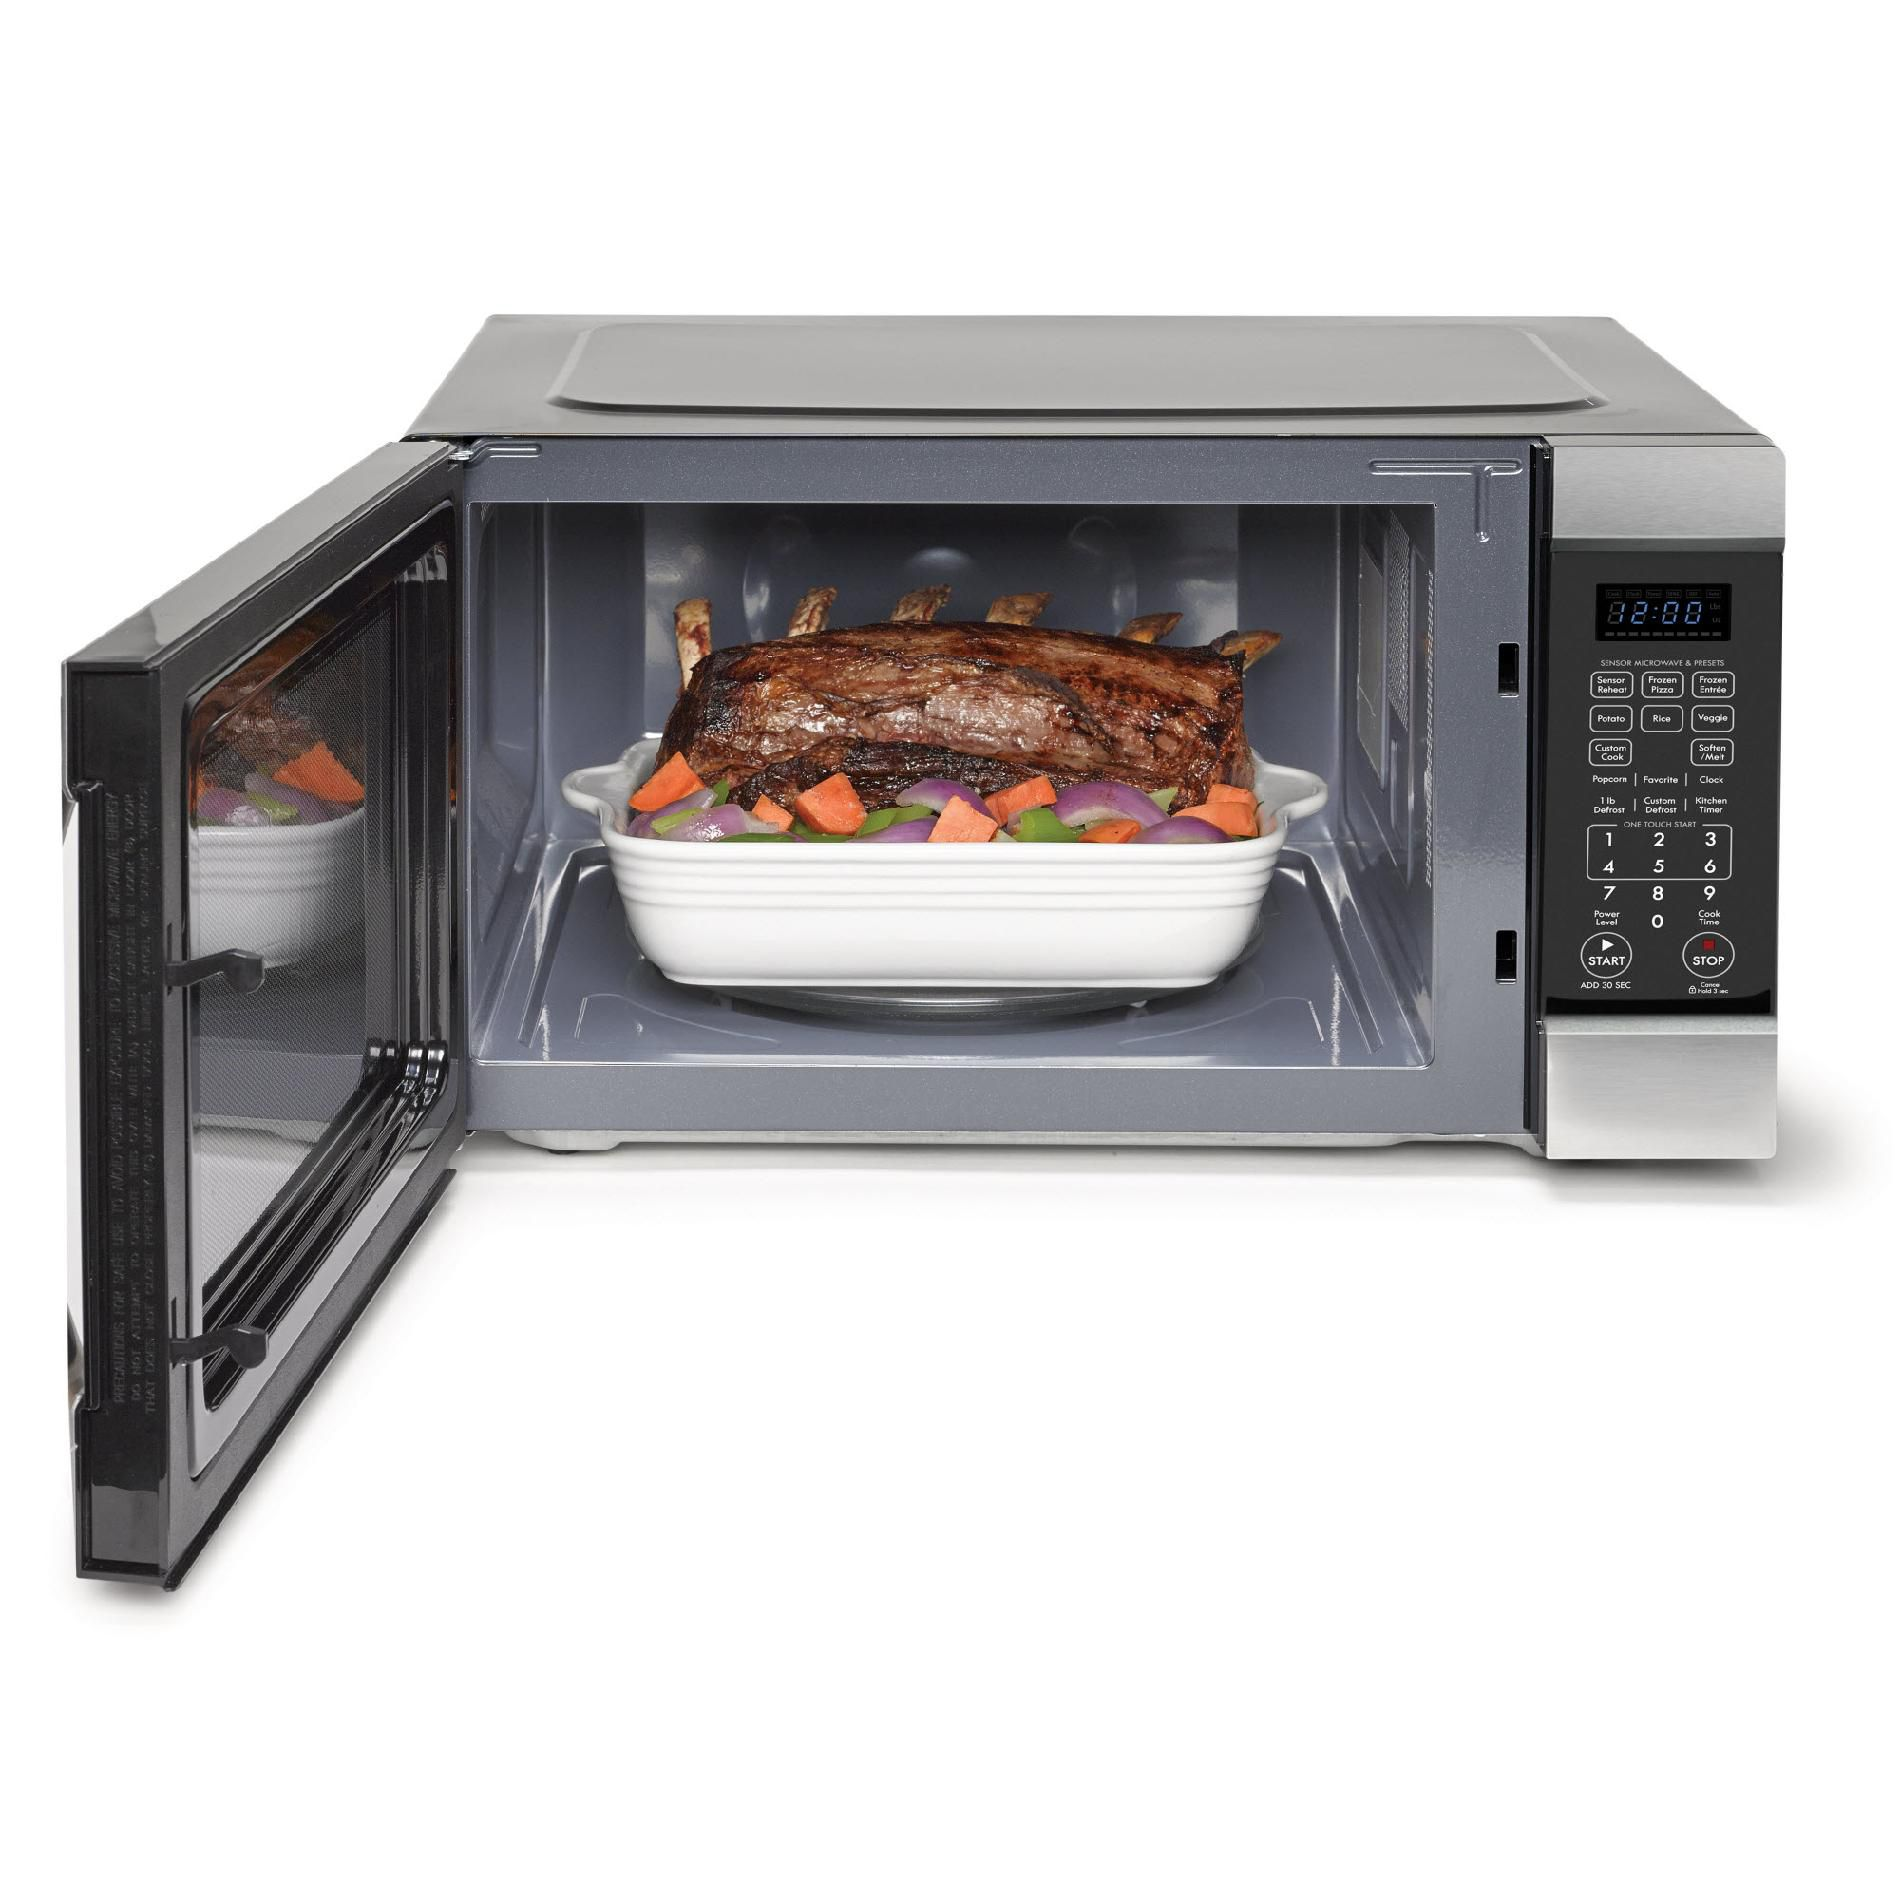 Kenmore Elite 2.2 cu. ft. Countertop Microwave w/ Extra-Large Capacity - Stainless Steel